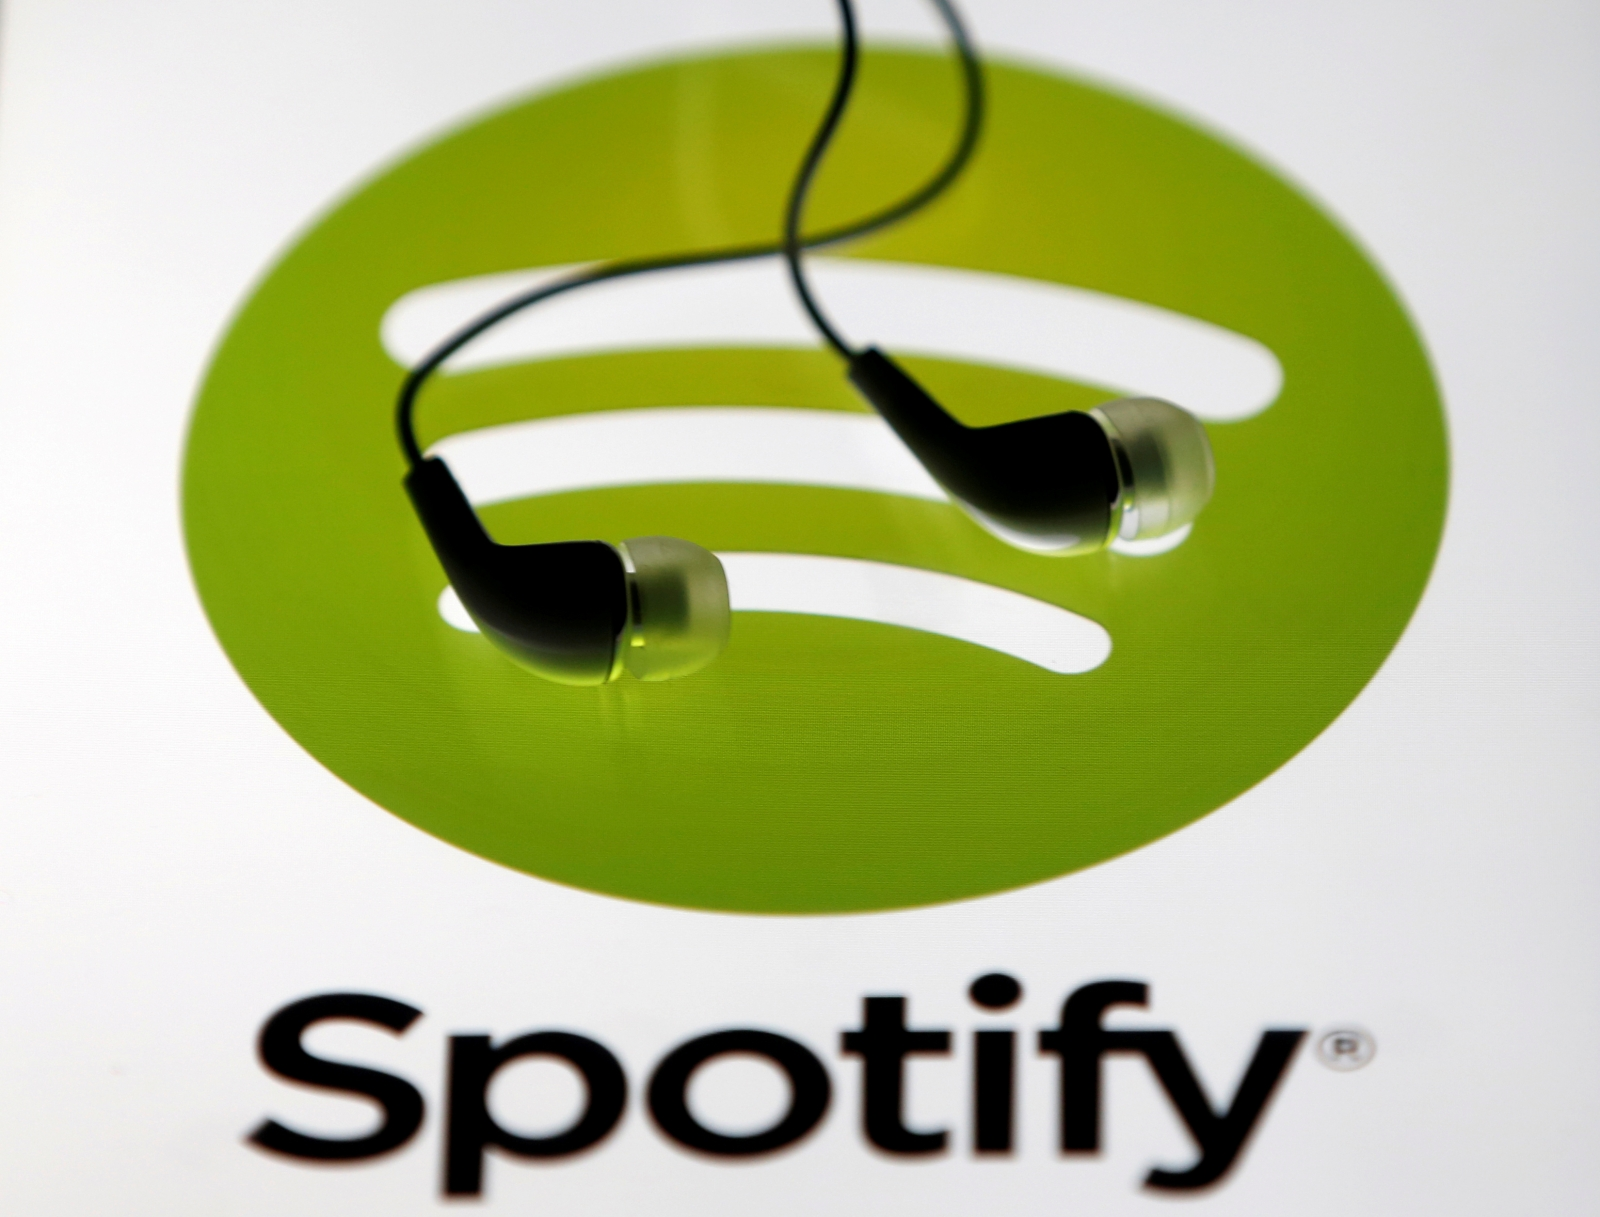 Online piracy drops due to Spotify, Netflix